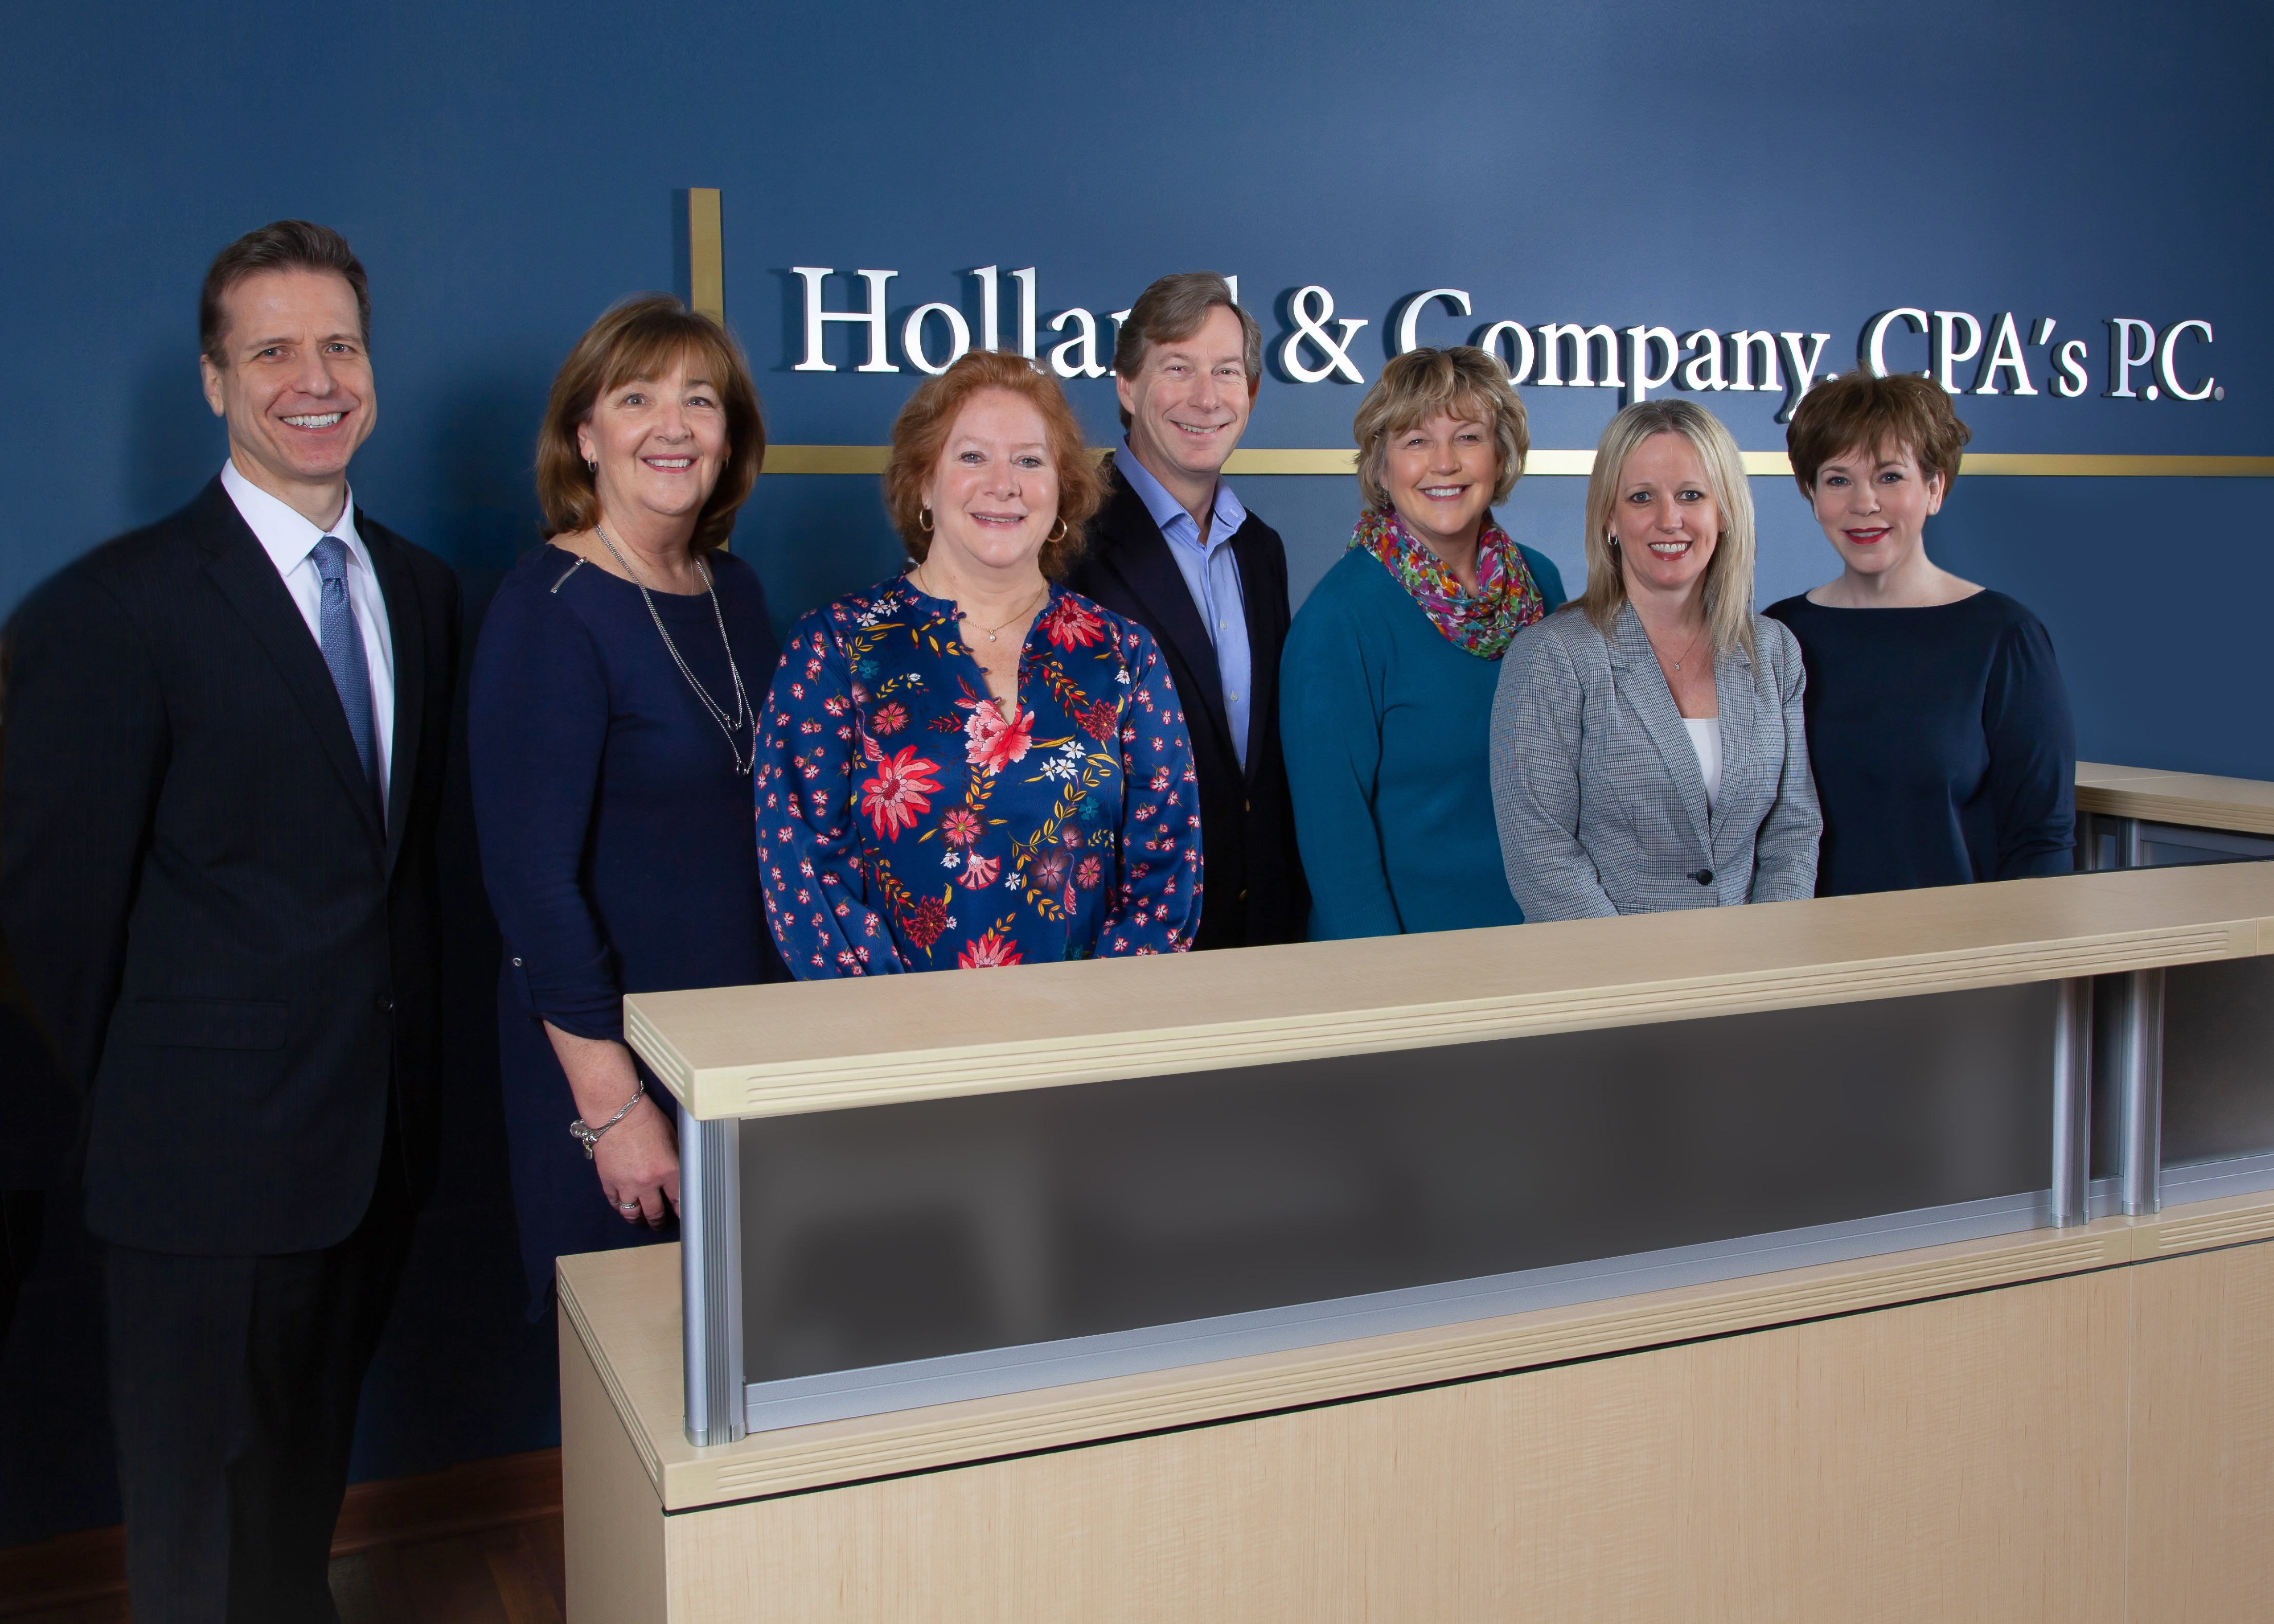 Holland & Company Staff CPAs Bookkeepers and Support Staff